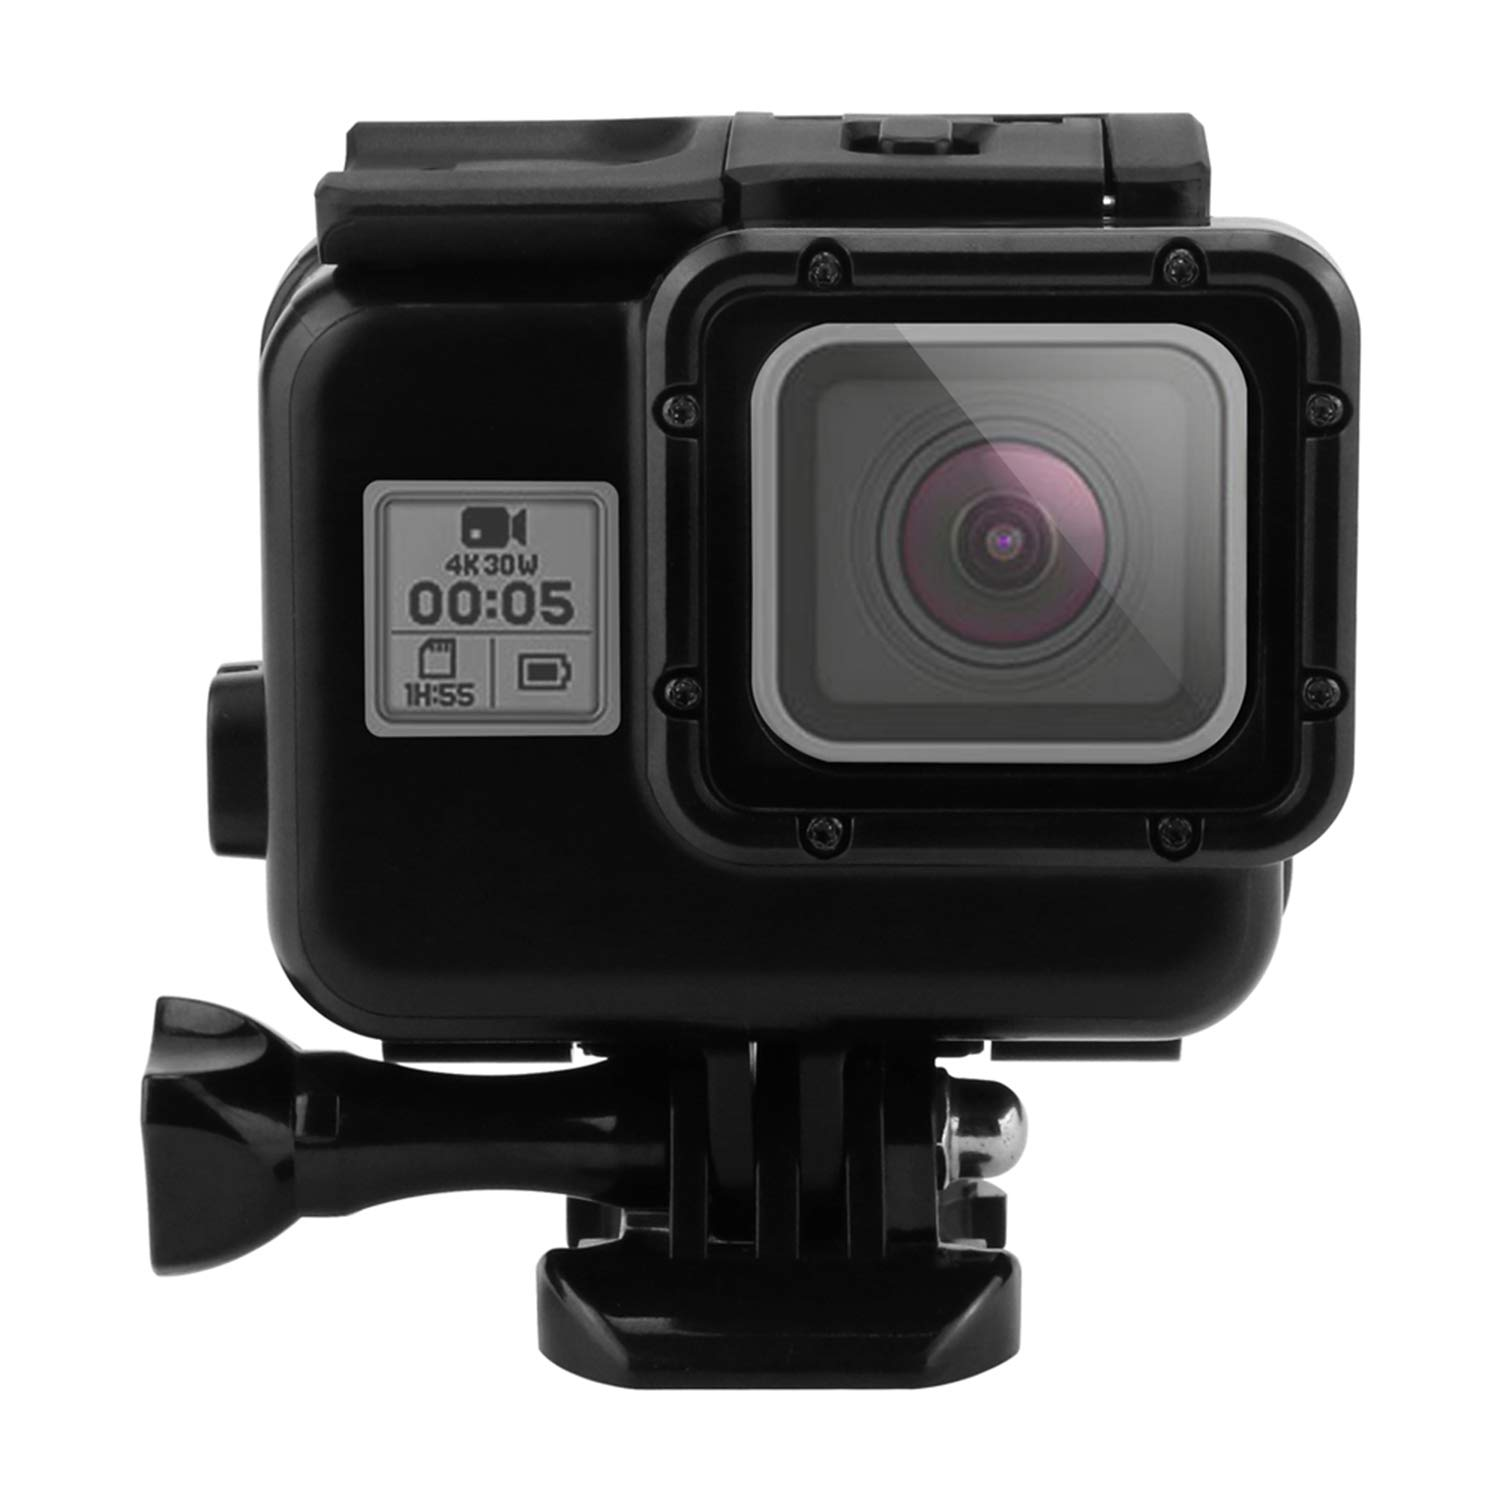 Shoot 45m Underwater Waterproof Case for GoPro Hero 6 5 7 Black Diving Protective Cover Housing Mount for Go Pro 6 5 7 Accessory by unbrand